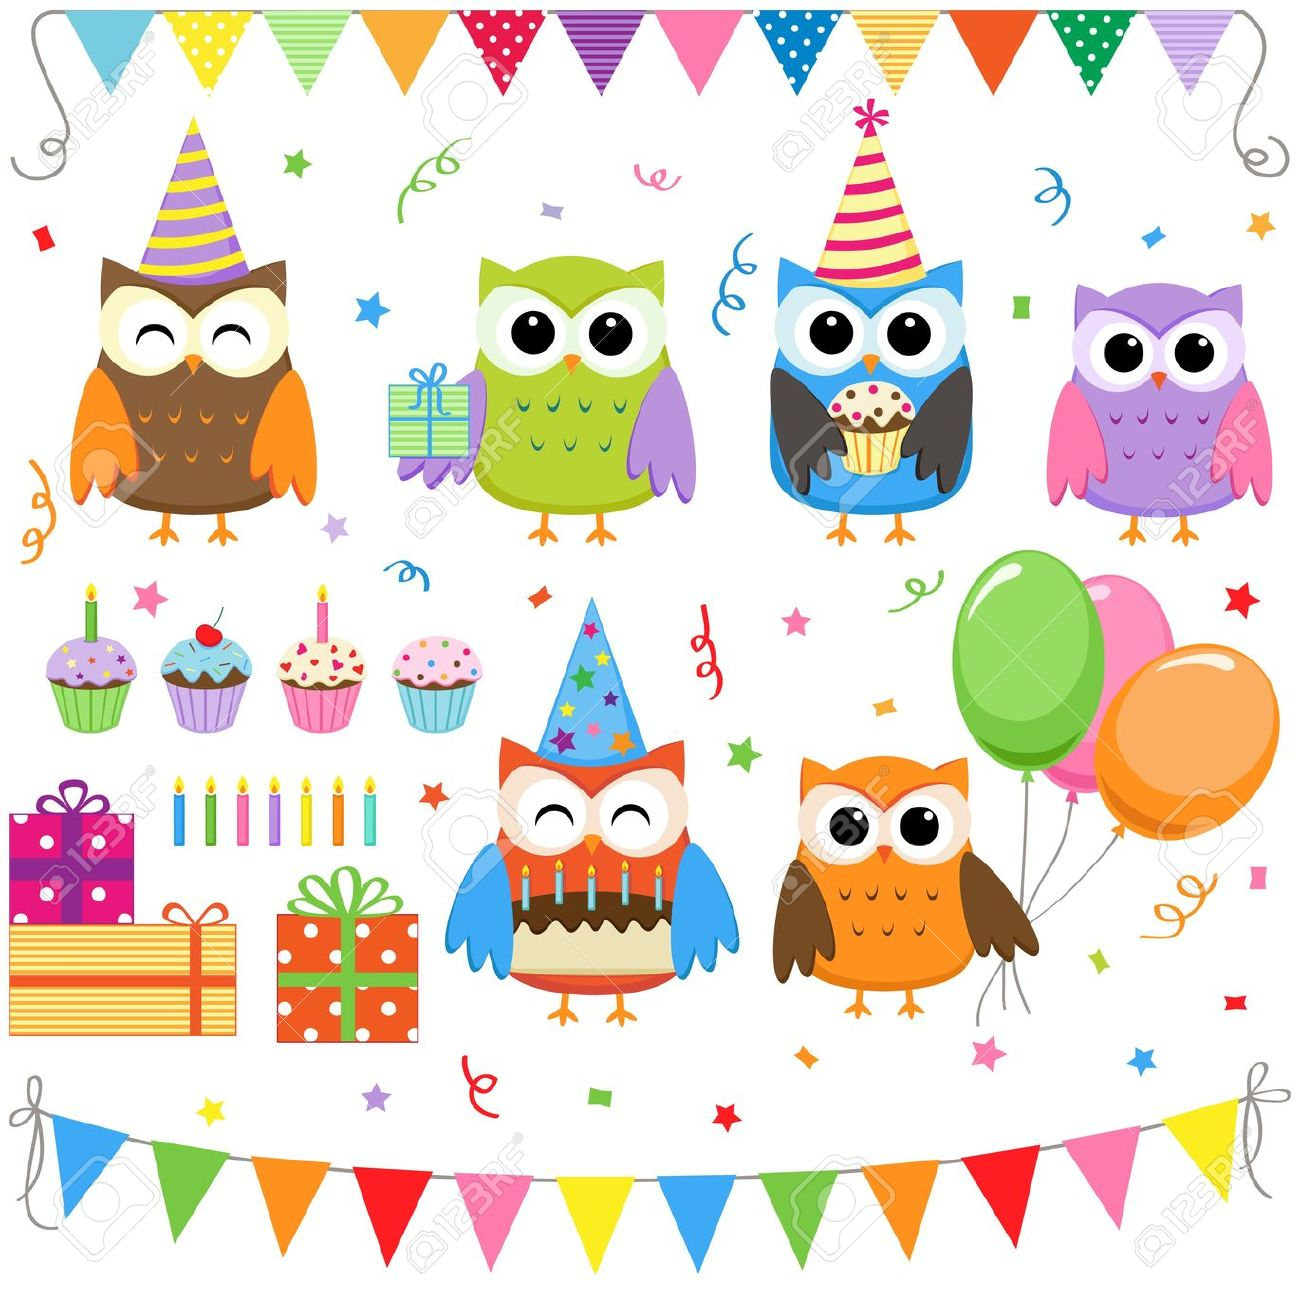 Eule clipart geburtstag clipart library download Eule clipart geburtstag - ClipartFest clipart library download